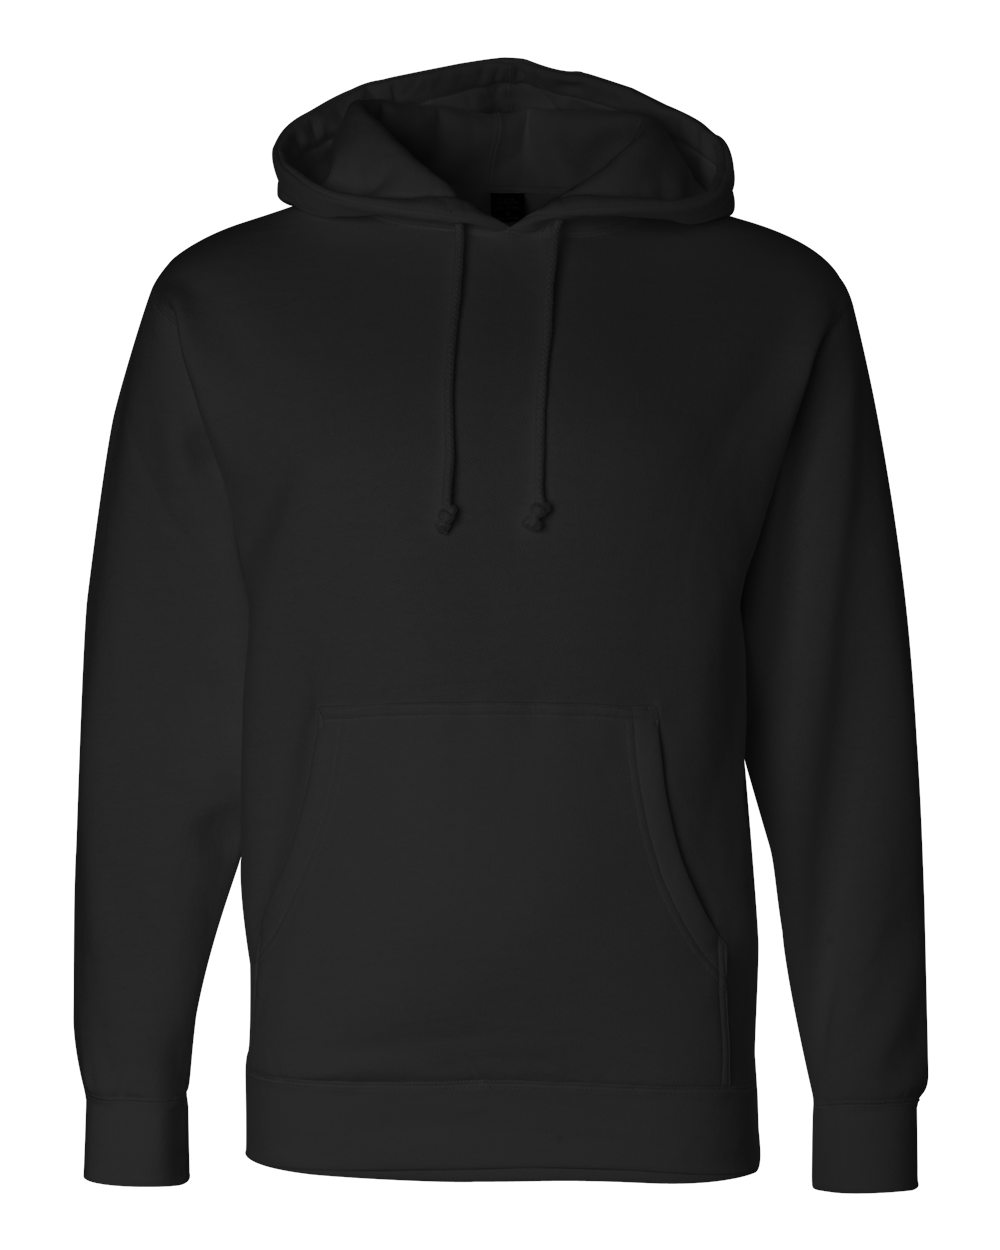 Independent-Trading-Co-Mens-Hooded-Pullover-Sweatshirt-IND4000-up-to-3XL miniature 12